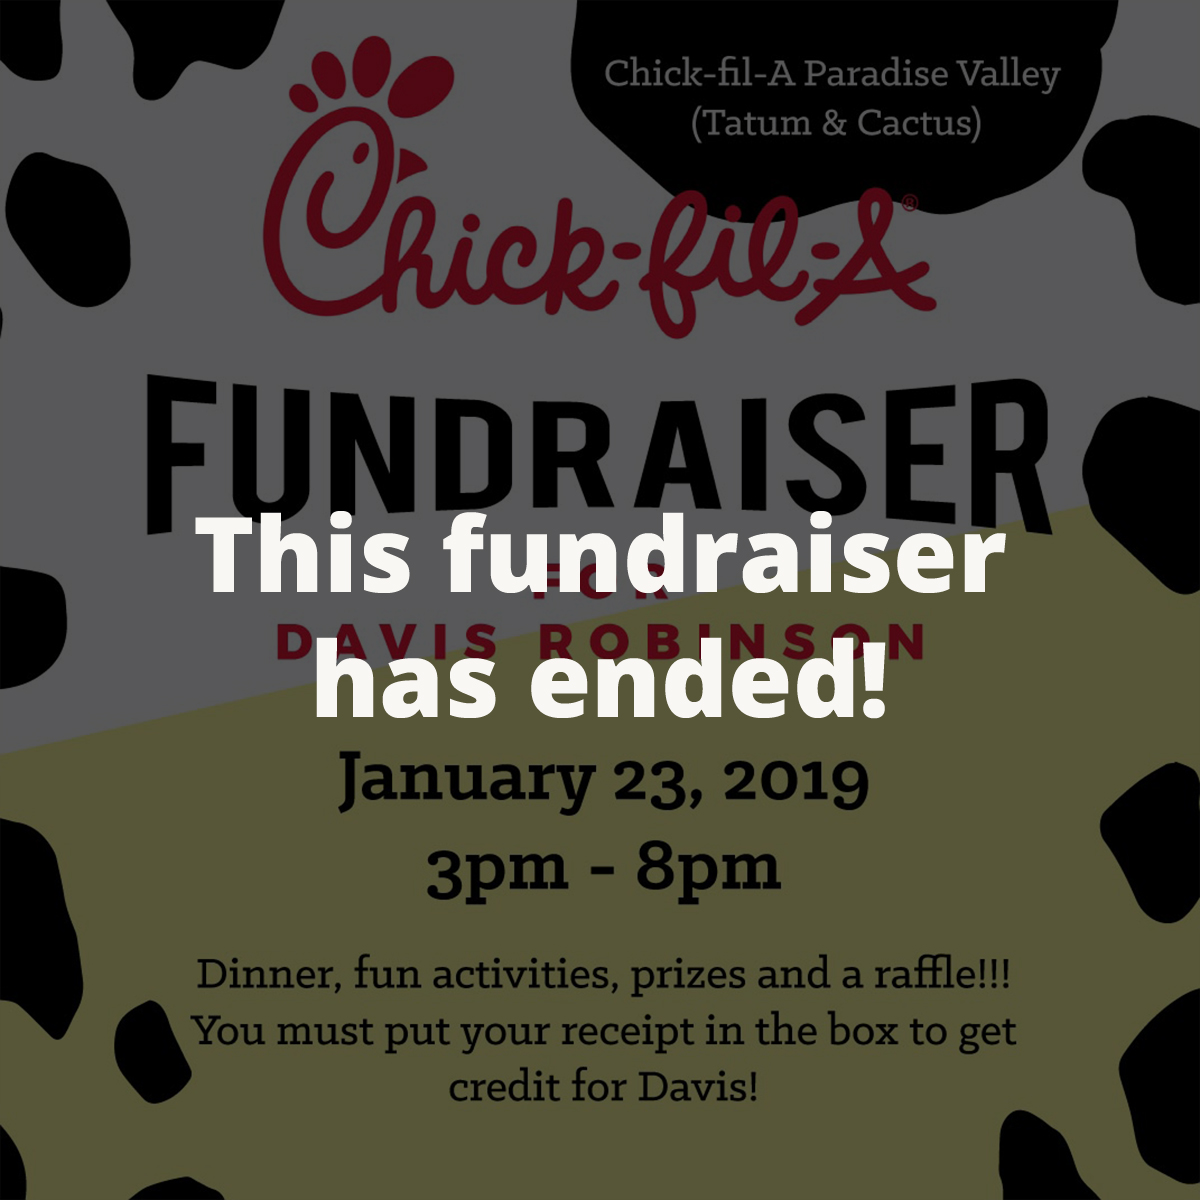 Eat Chick-fil-A for Davis! - January 23, 2019 from 3pm - 8pm Chick-fil-A Paradise Valley (Tatum & Cactus)There will be fun activities for the kids, prizes, a RAFFLE, and of course, CHICKEN. You must put your receipt in the box to receive credit for Davis!